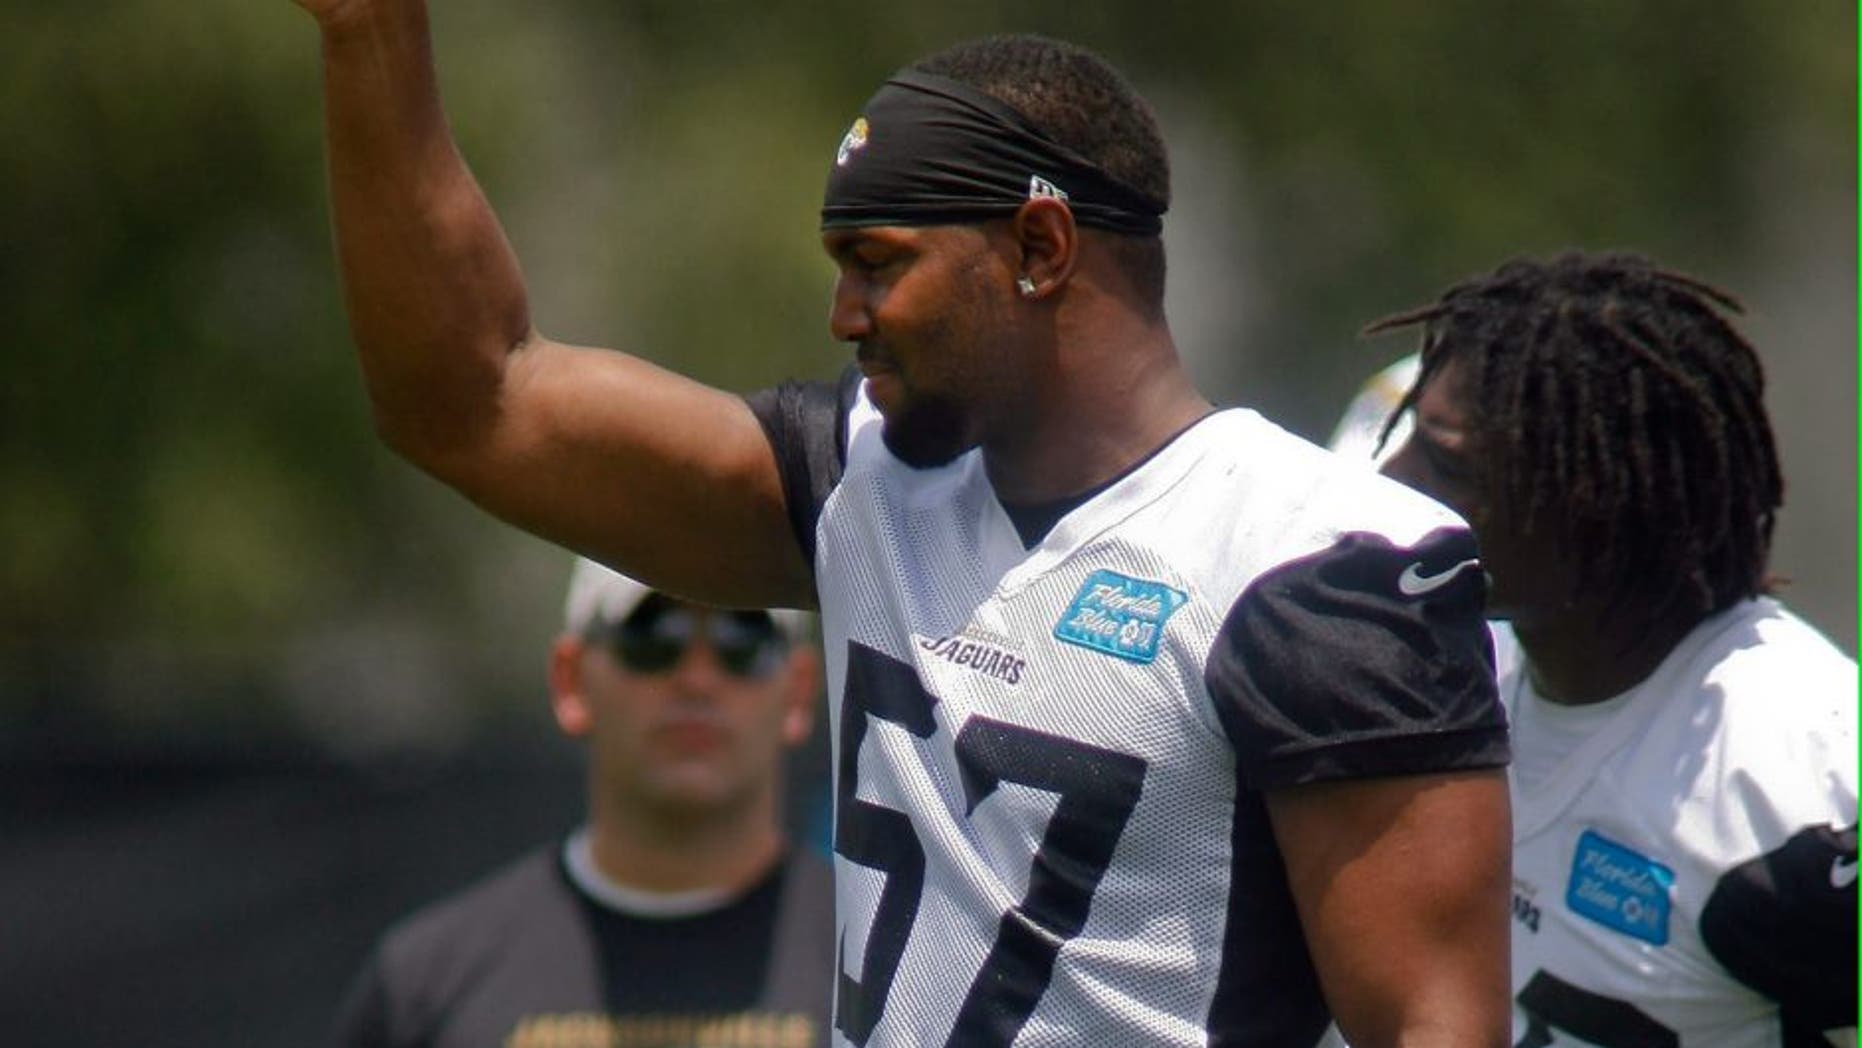 Jun 17, 2014; Jacksonville, FL, USA; Jacksonville Jaguars linebacker Dekoda Watson (57) reacts after a defensive play during the first day of minicamp at Florida Blue Health and Wellness Practice Fields. Mandatory Credit: Phil Sears-USA TODAY Sports